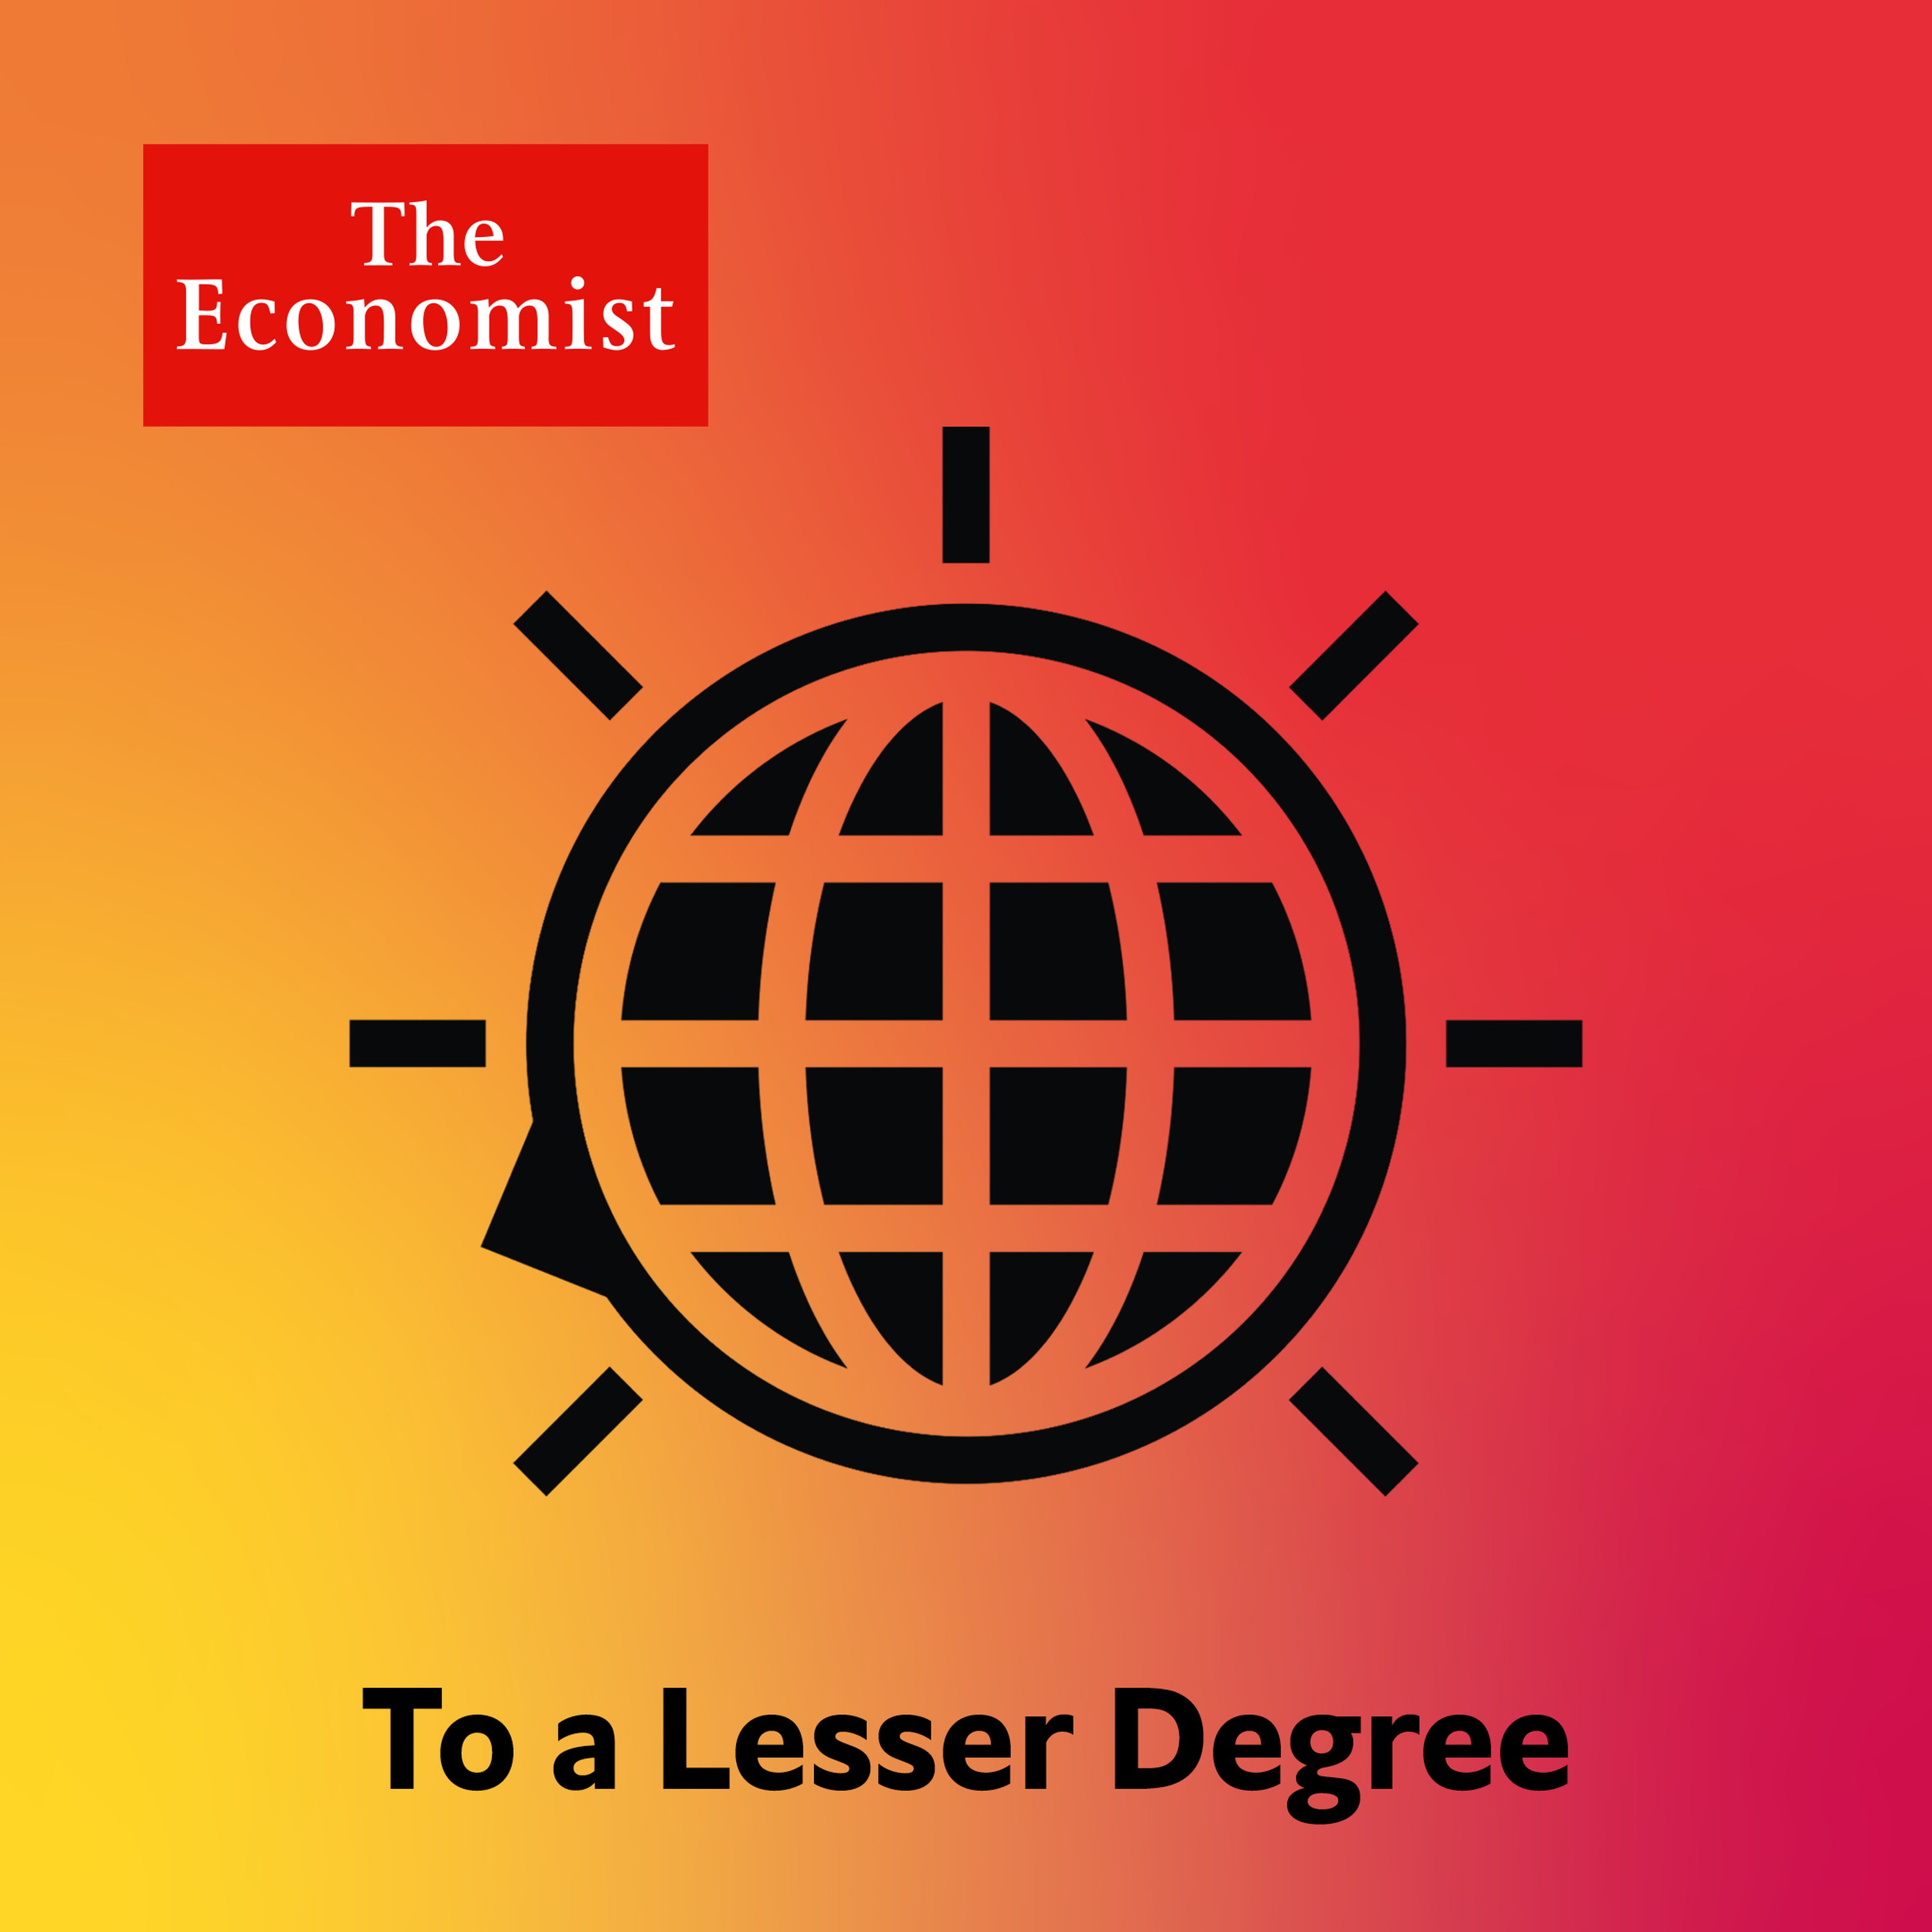 To a Lesser Degree: Going in reverse